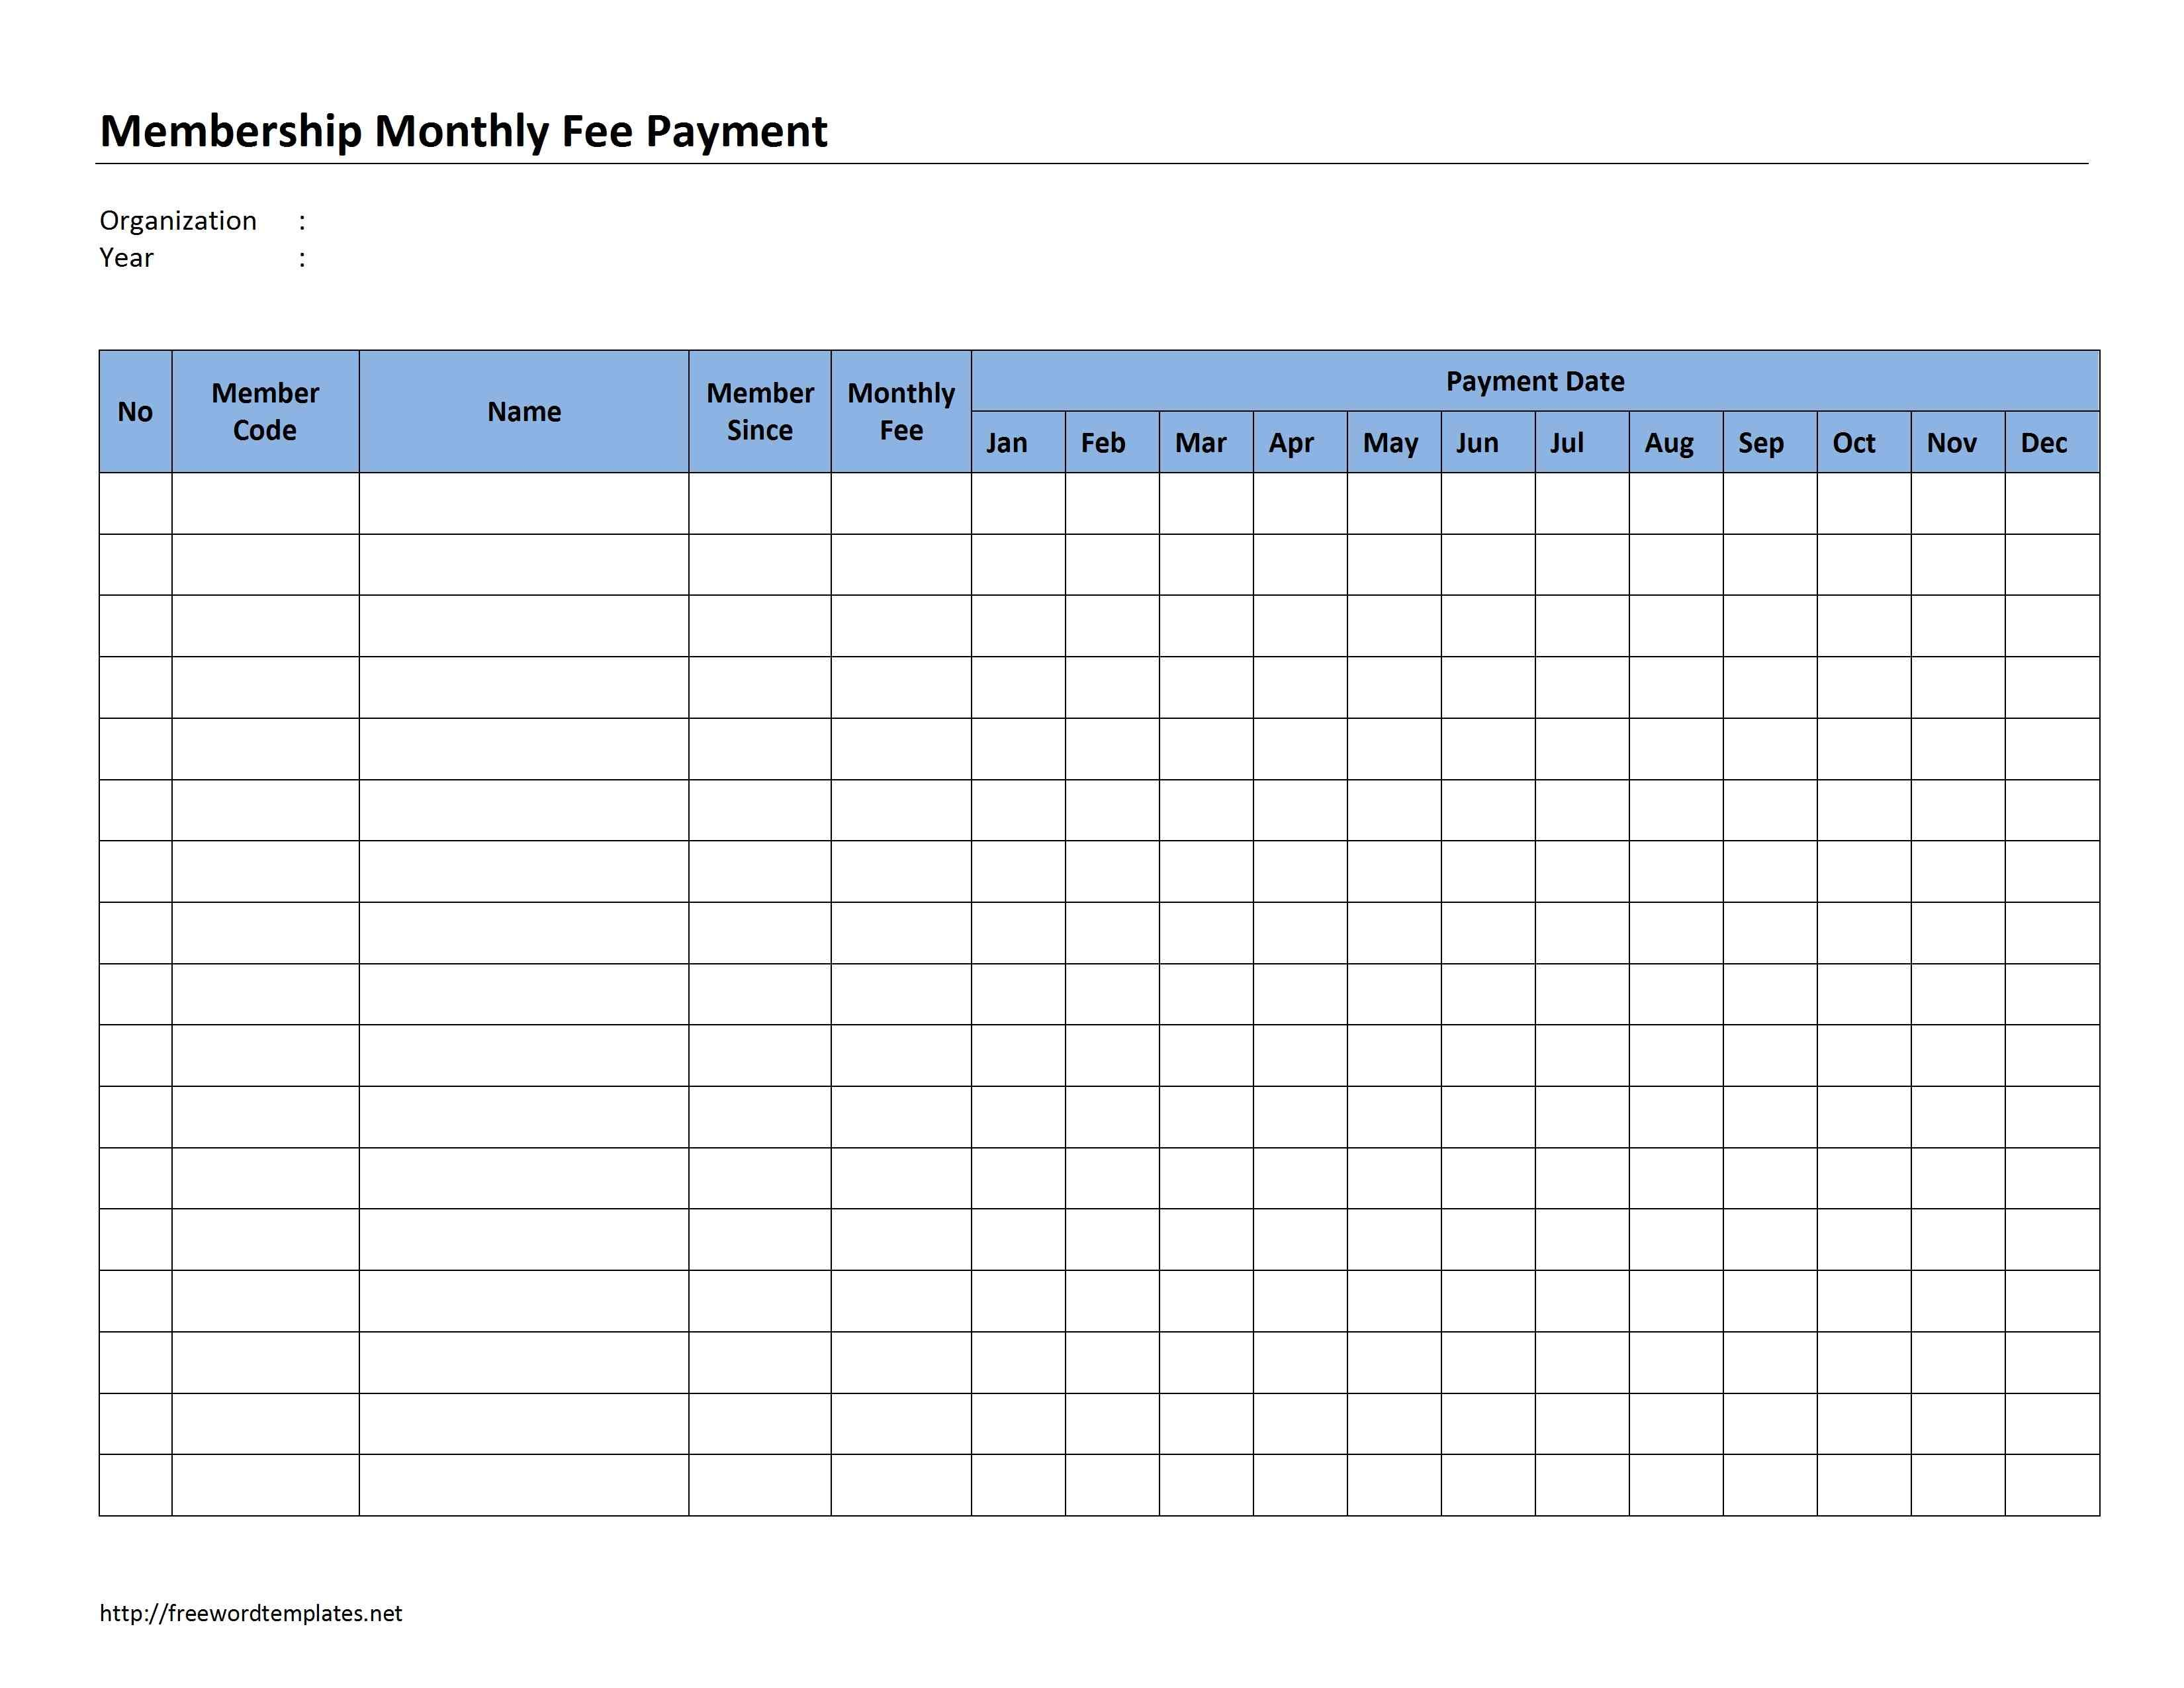 MembershipMonthlyFeePaymentJpg  Sheets For Printing